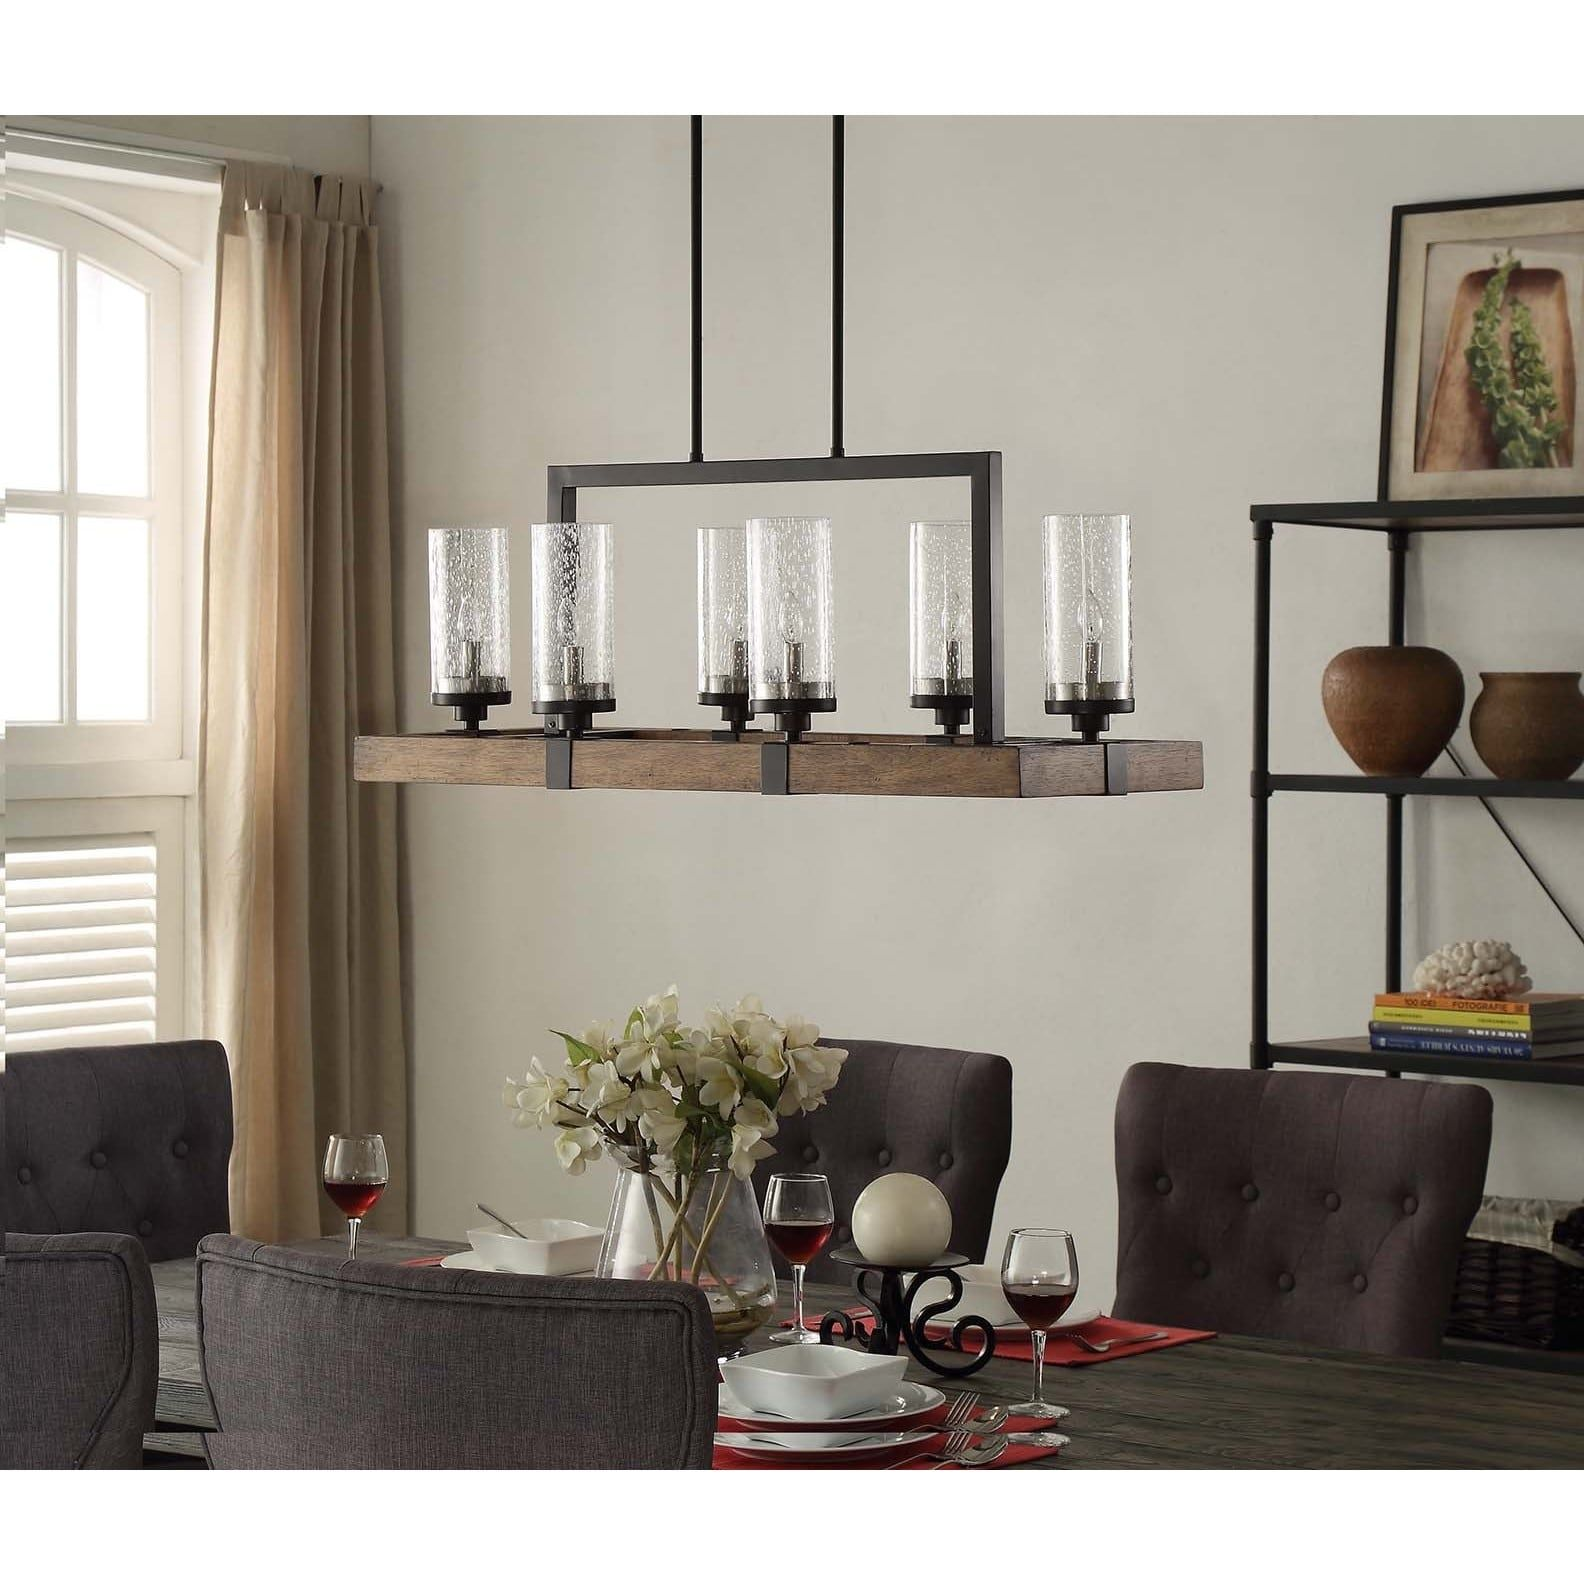 Vineyard metal and wood 6 light chandelier with seeded glass shades vineyard metal and wood 6 light chandelier with seeded glass shades overstock aloadofball Image collections